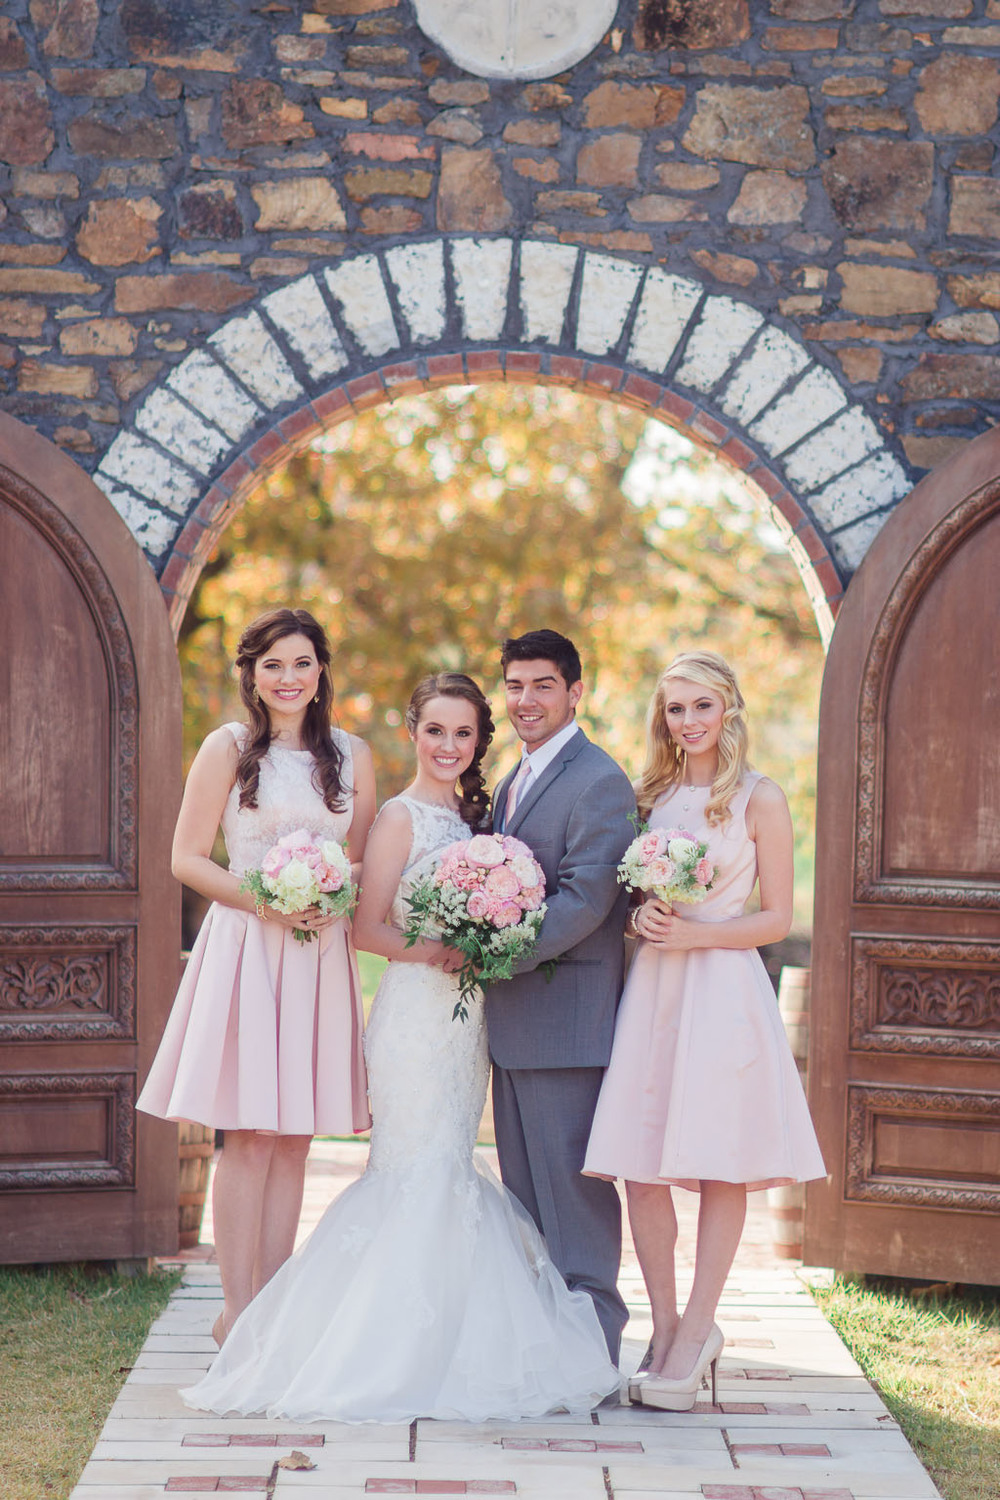 Sassafras springs vineyard ruined chapel wedding blush pink bridesmaid dresses grey tux fayetteville ar wedding photographer